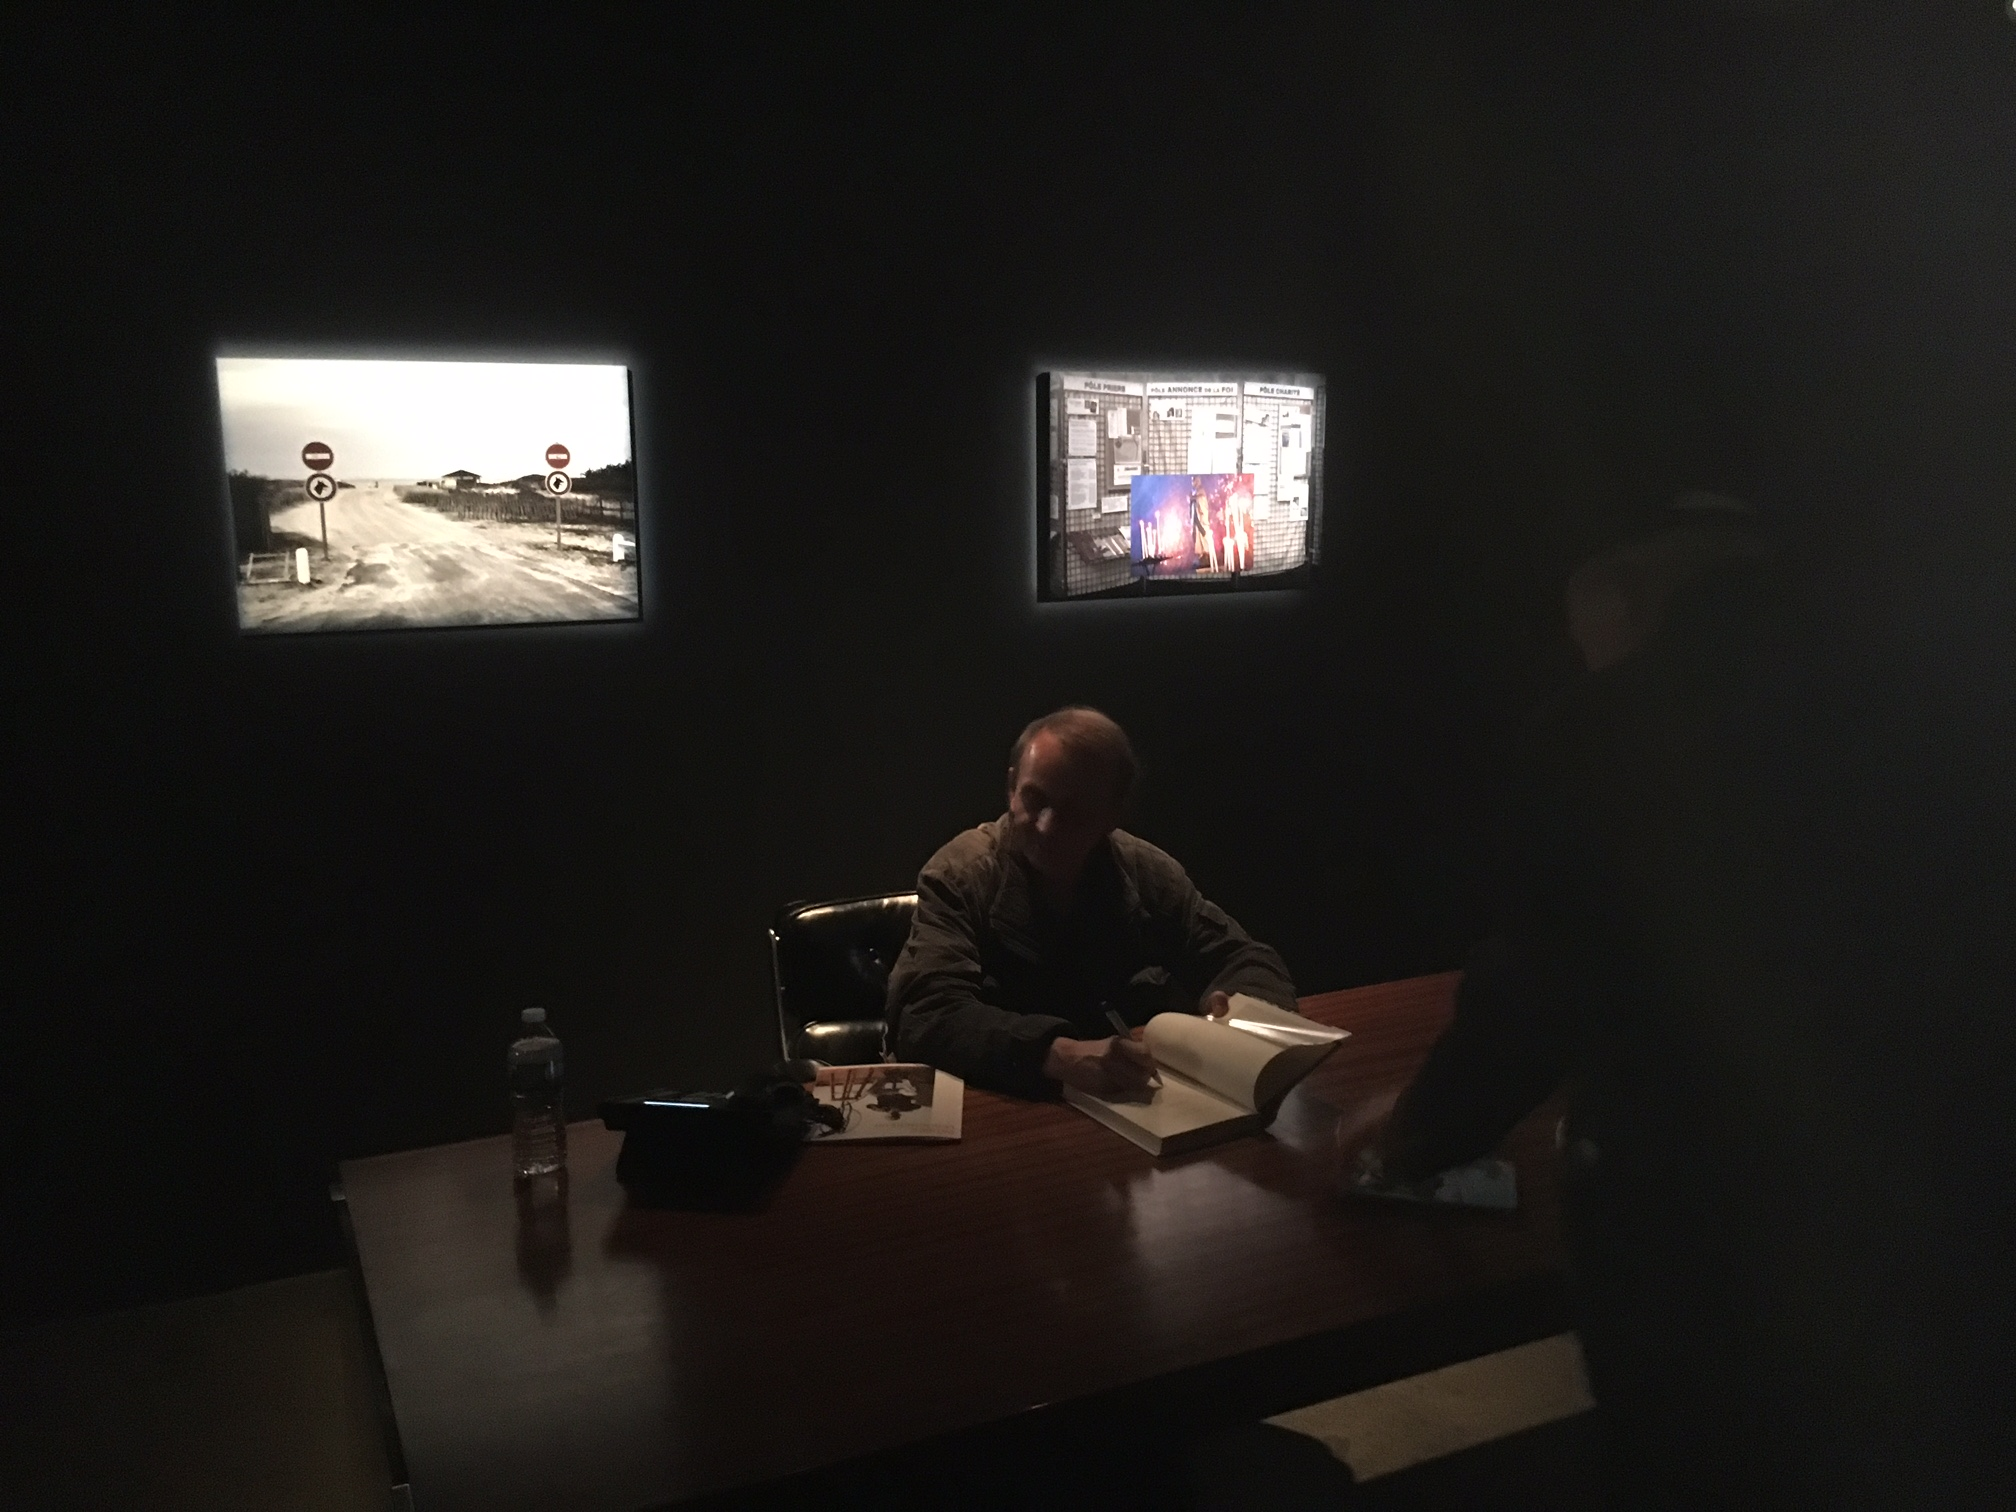 """Novelist, poet, and artist Michel Houellebecq signing copies in the dark at the opening of his show """"Michel Houellebecq: French Bashing"""" on Friday in New York. Photo Credit: Joel Whitney"""